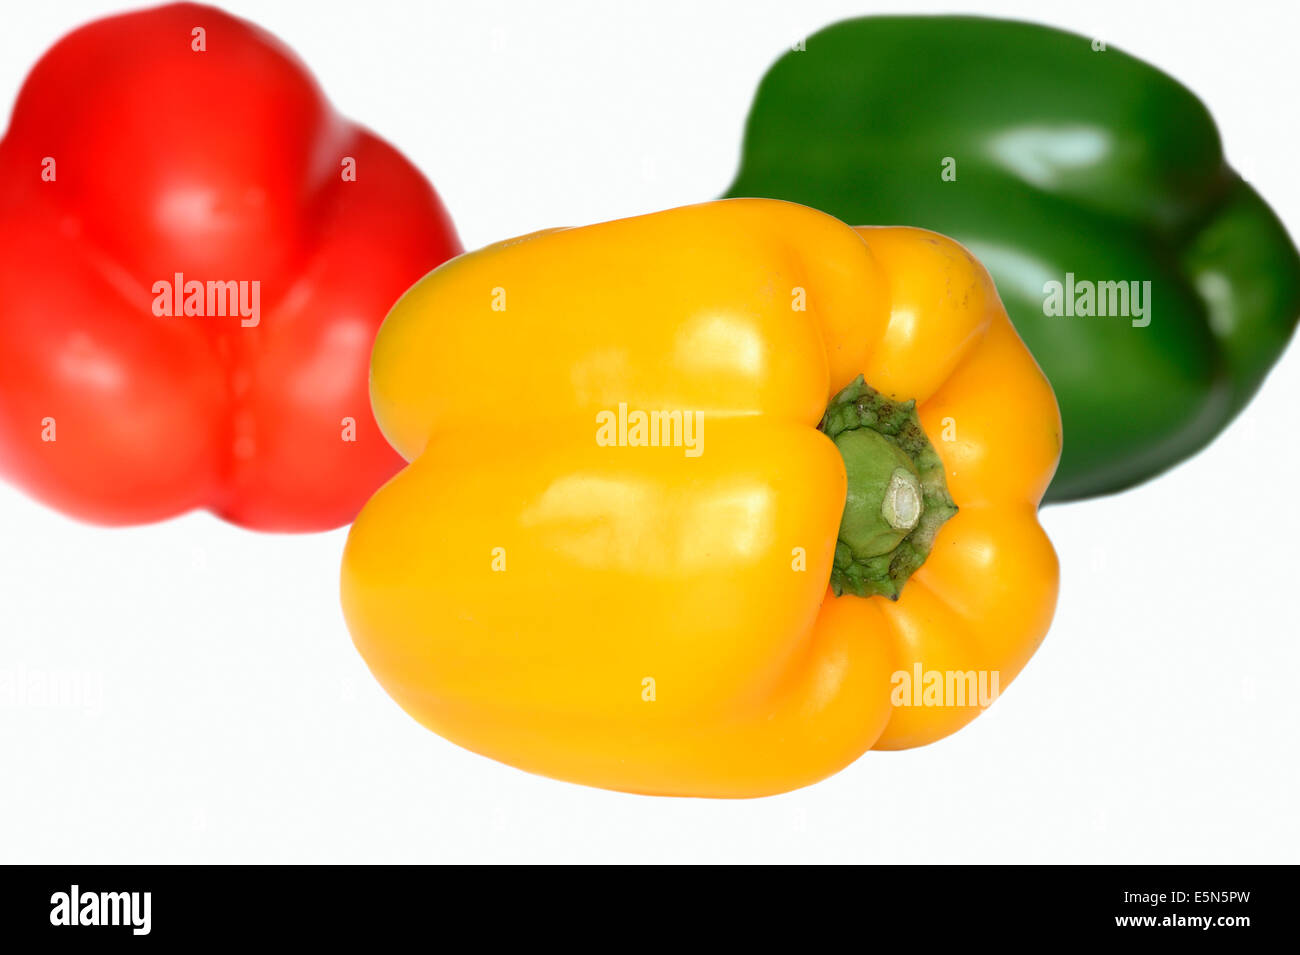 Green, yellow and red Pepper fruits (Capsicum annuum) - Stock Image